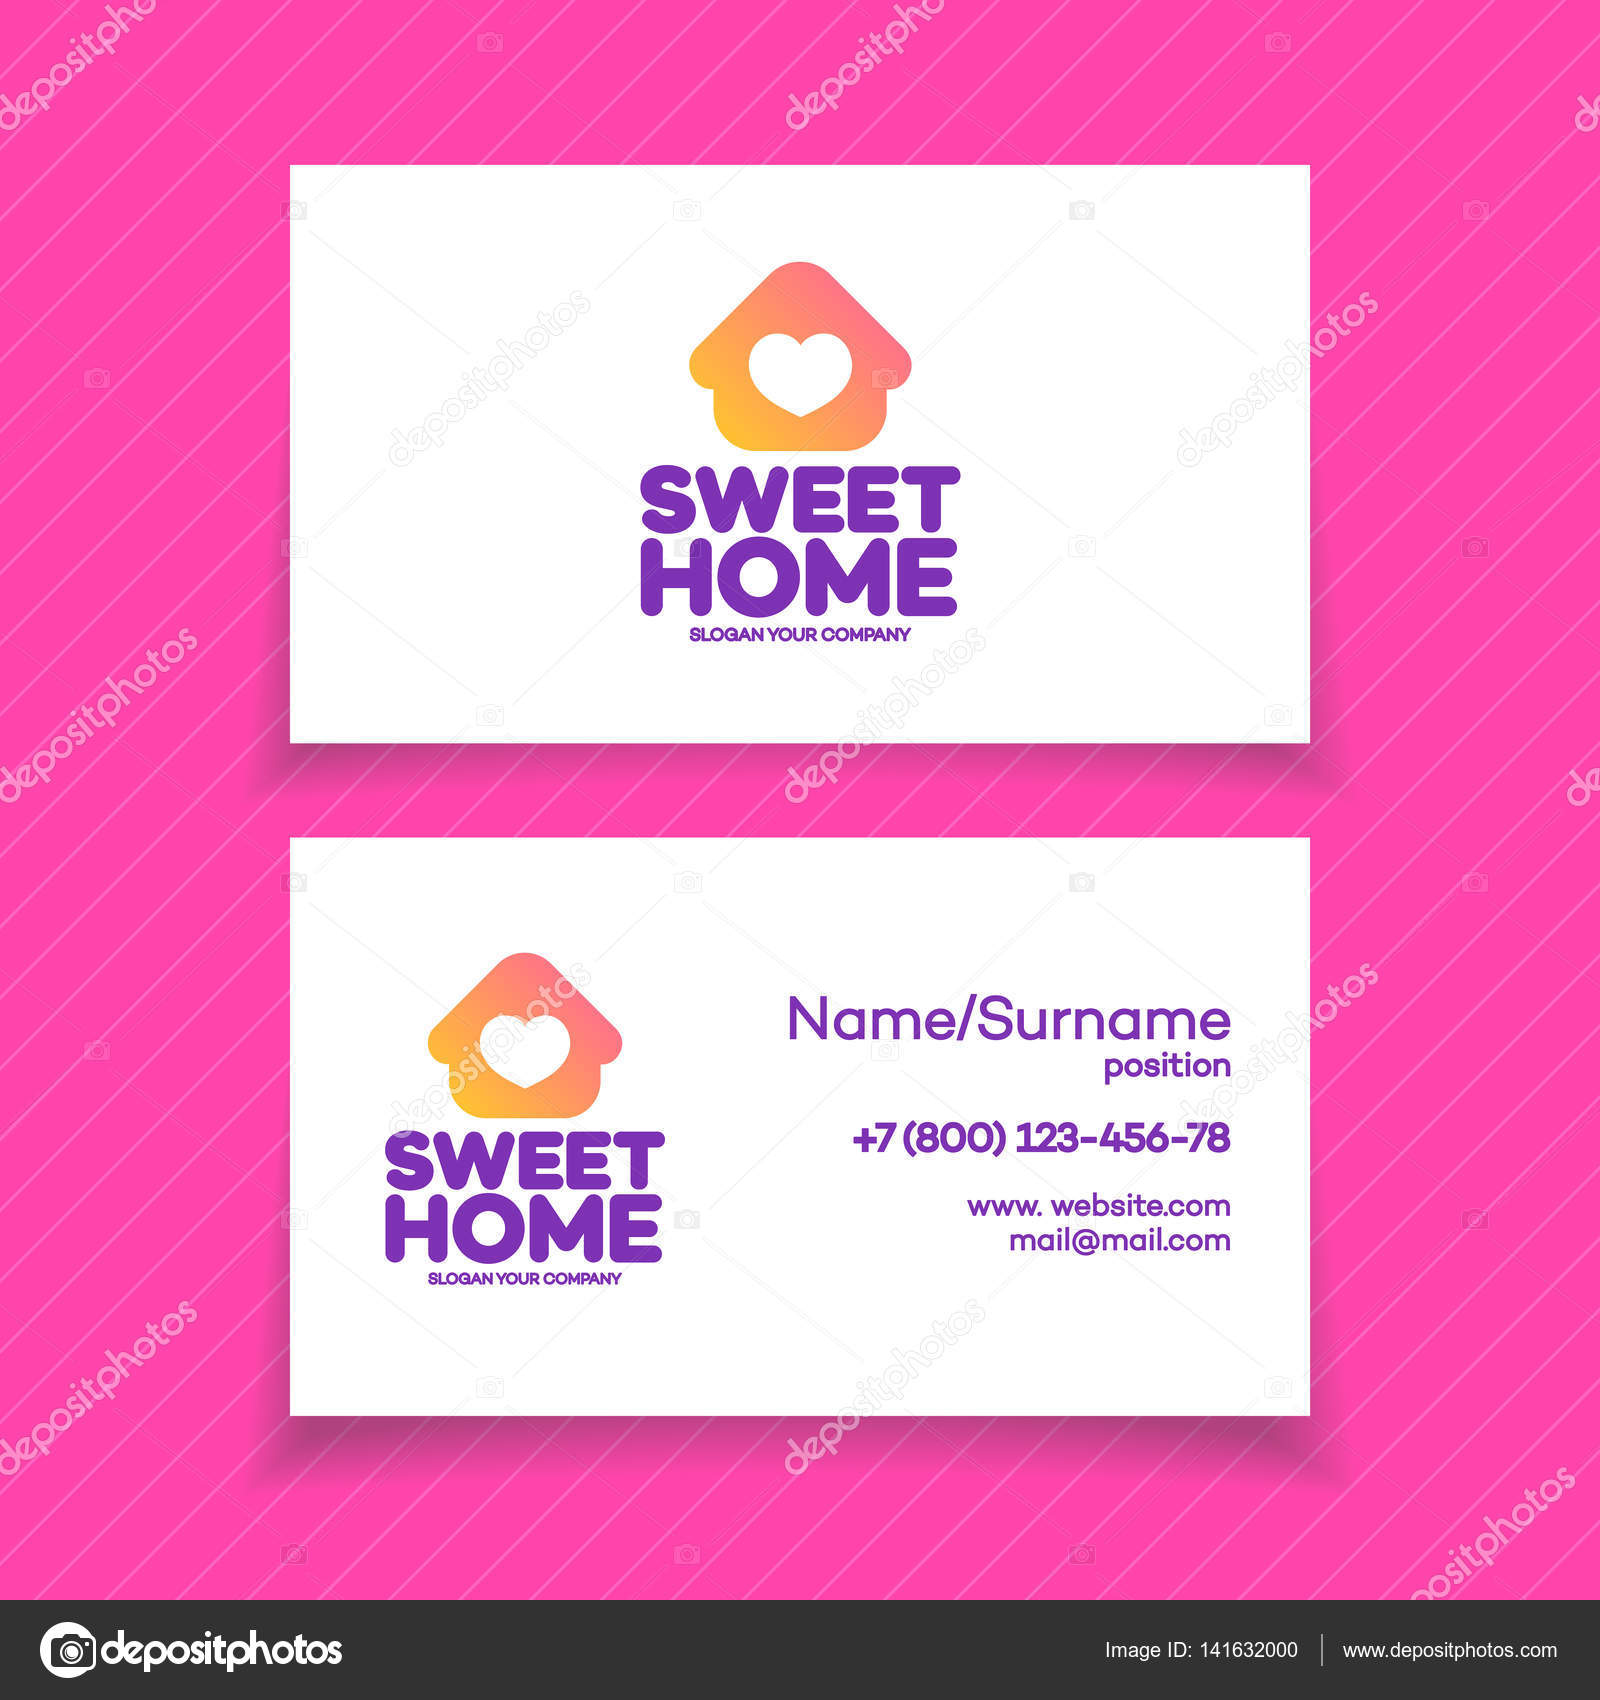 Depositphotos 141632000 Stock Illustration Business Card With Home Logo